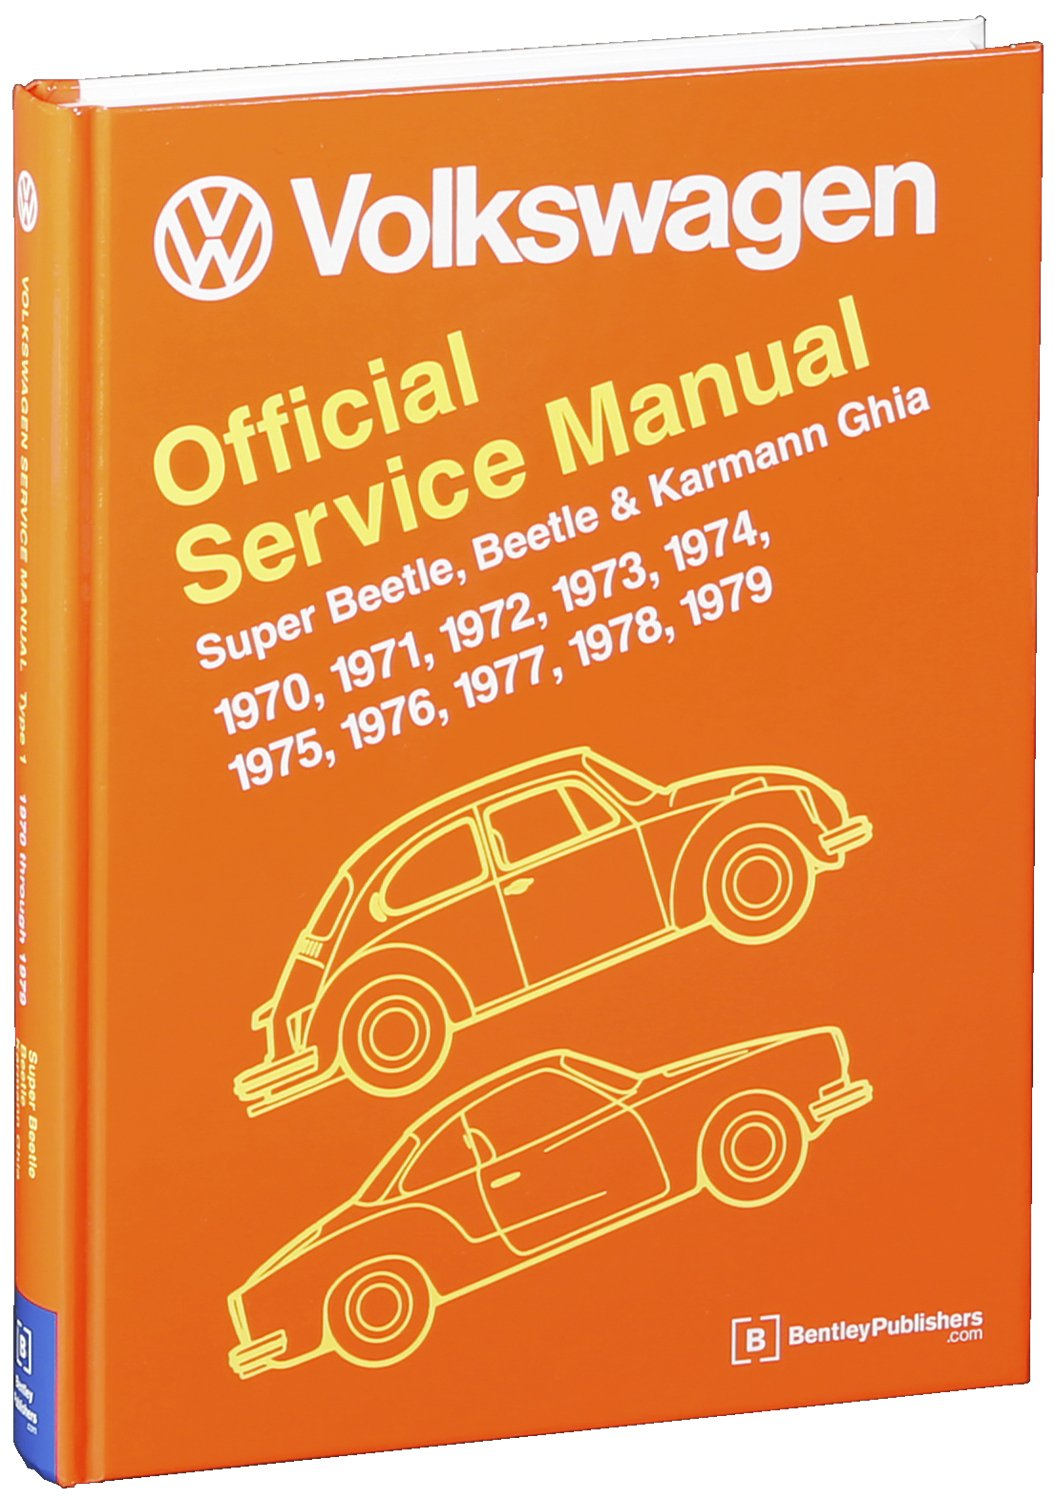 Volkswagen Super Beetle Karmann Ghia Type 1 Official Wiring Diagram In Addition 74 Vw Service Manual 1970 1971 1972 1973 1974 1975 1976 1977 1978 1979